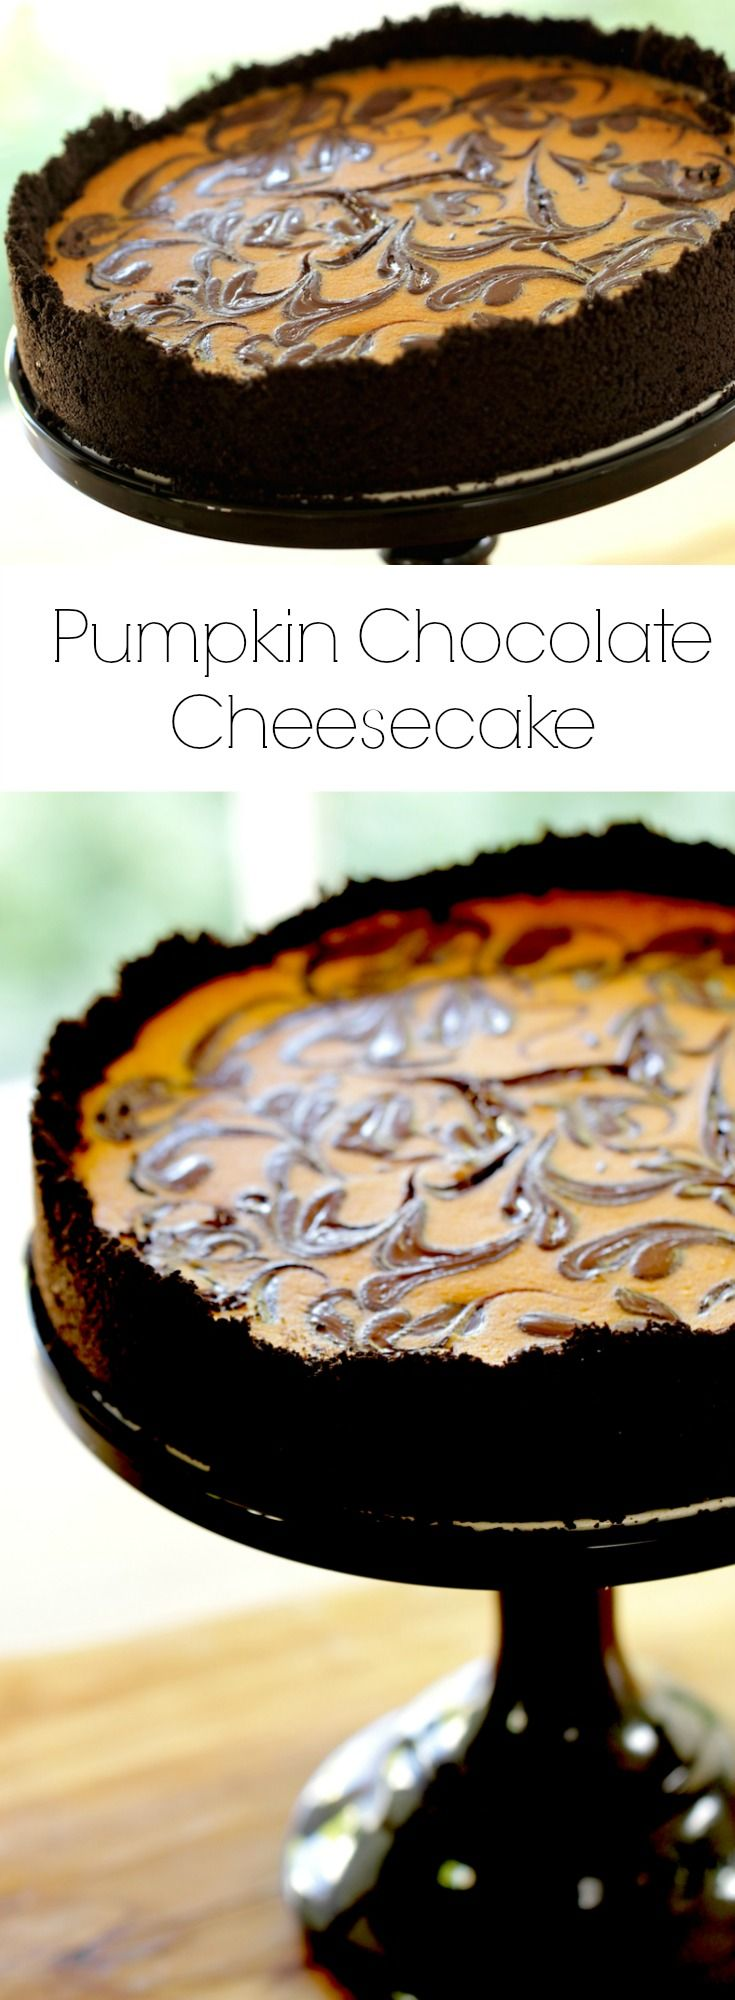 Pumpkin Cheesecake with Chocolate Swirl. A Halloween dessert Idea that is as beautiful as it is delicious. Includes Recipe Video too.